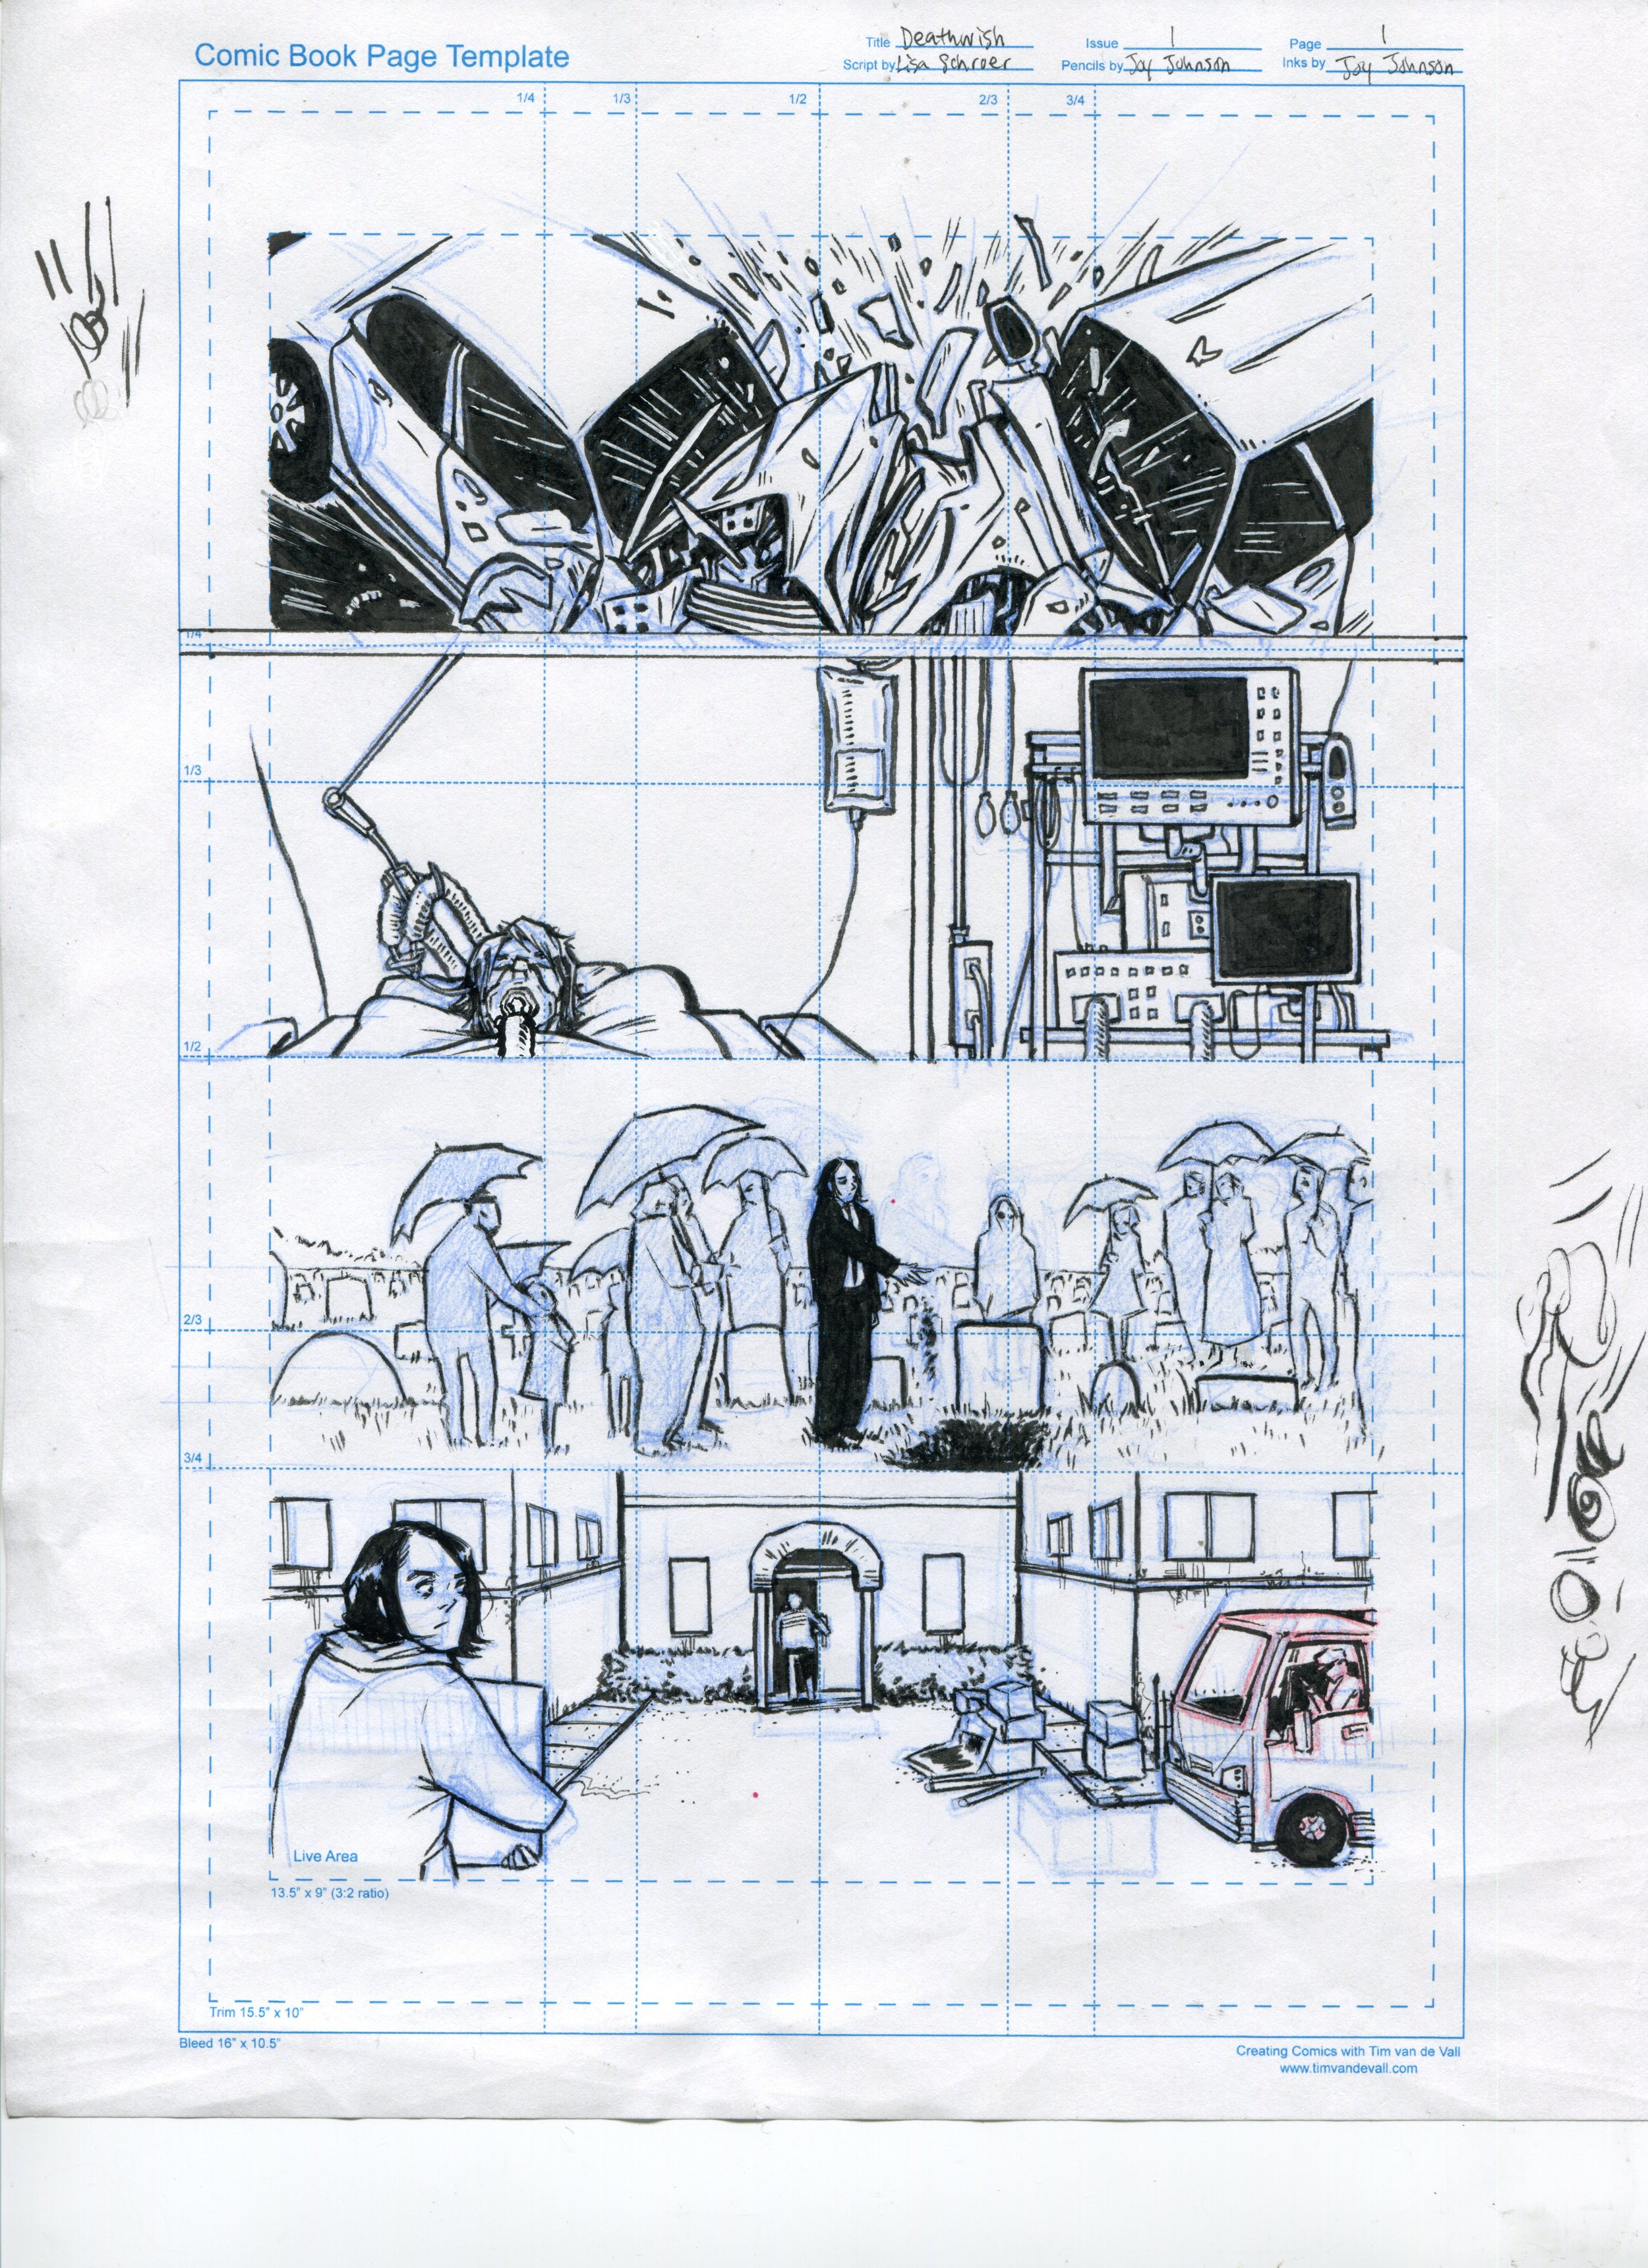 Joy's third-ish try drawing the original first page of Deathwish.